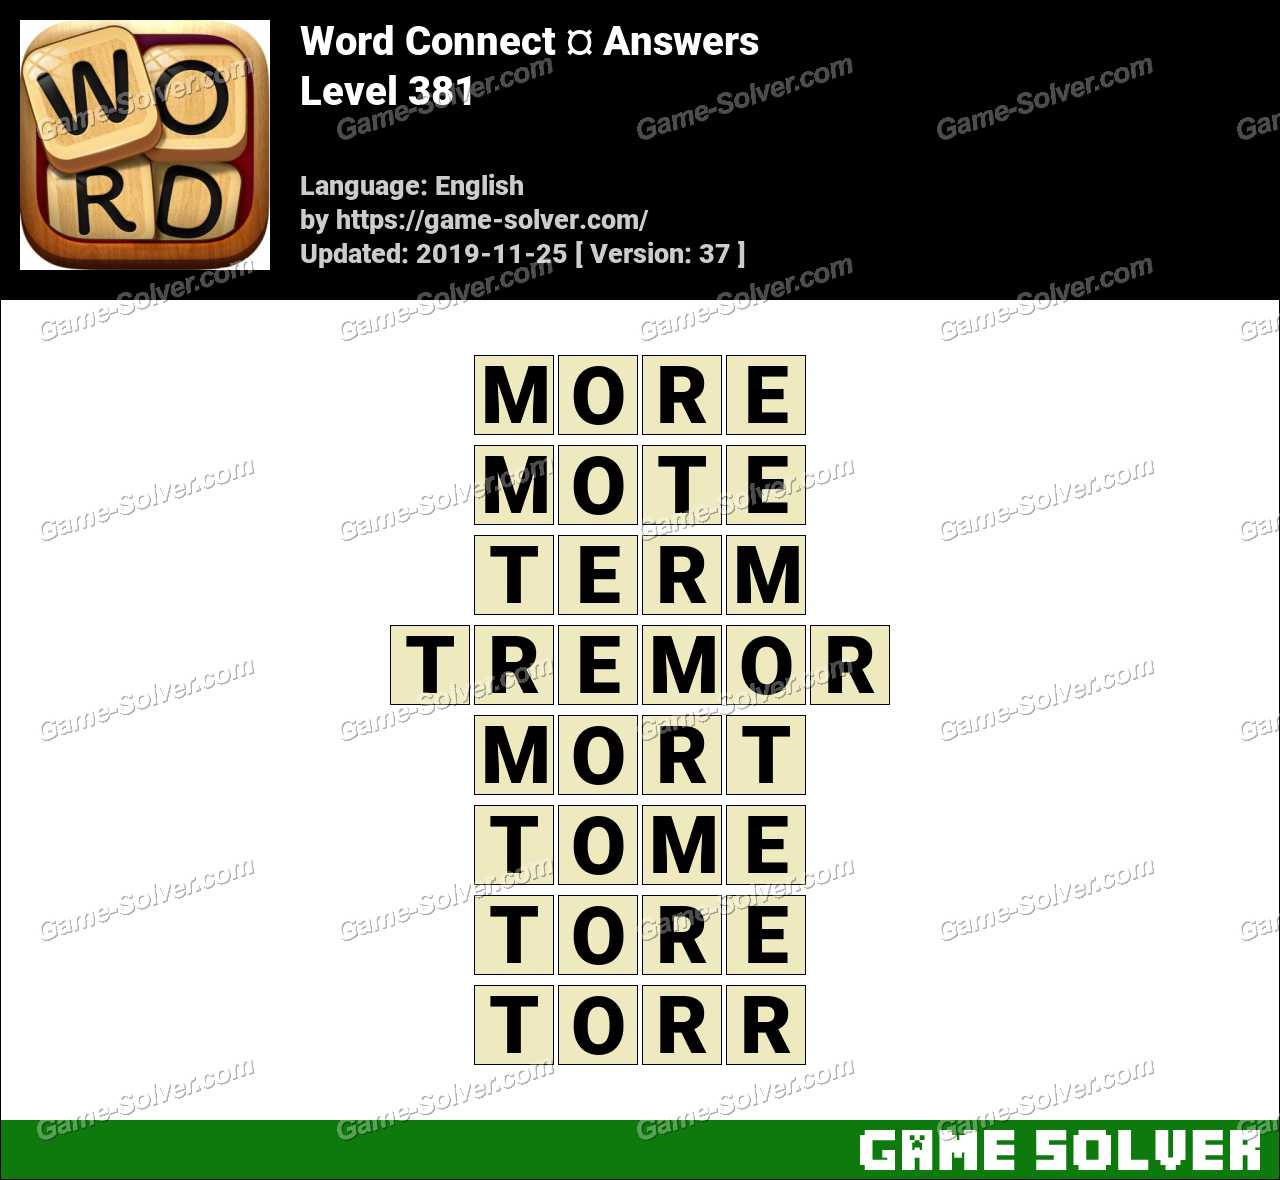 Word Connect Level 381 Answers